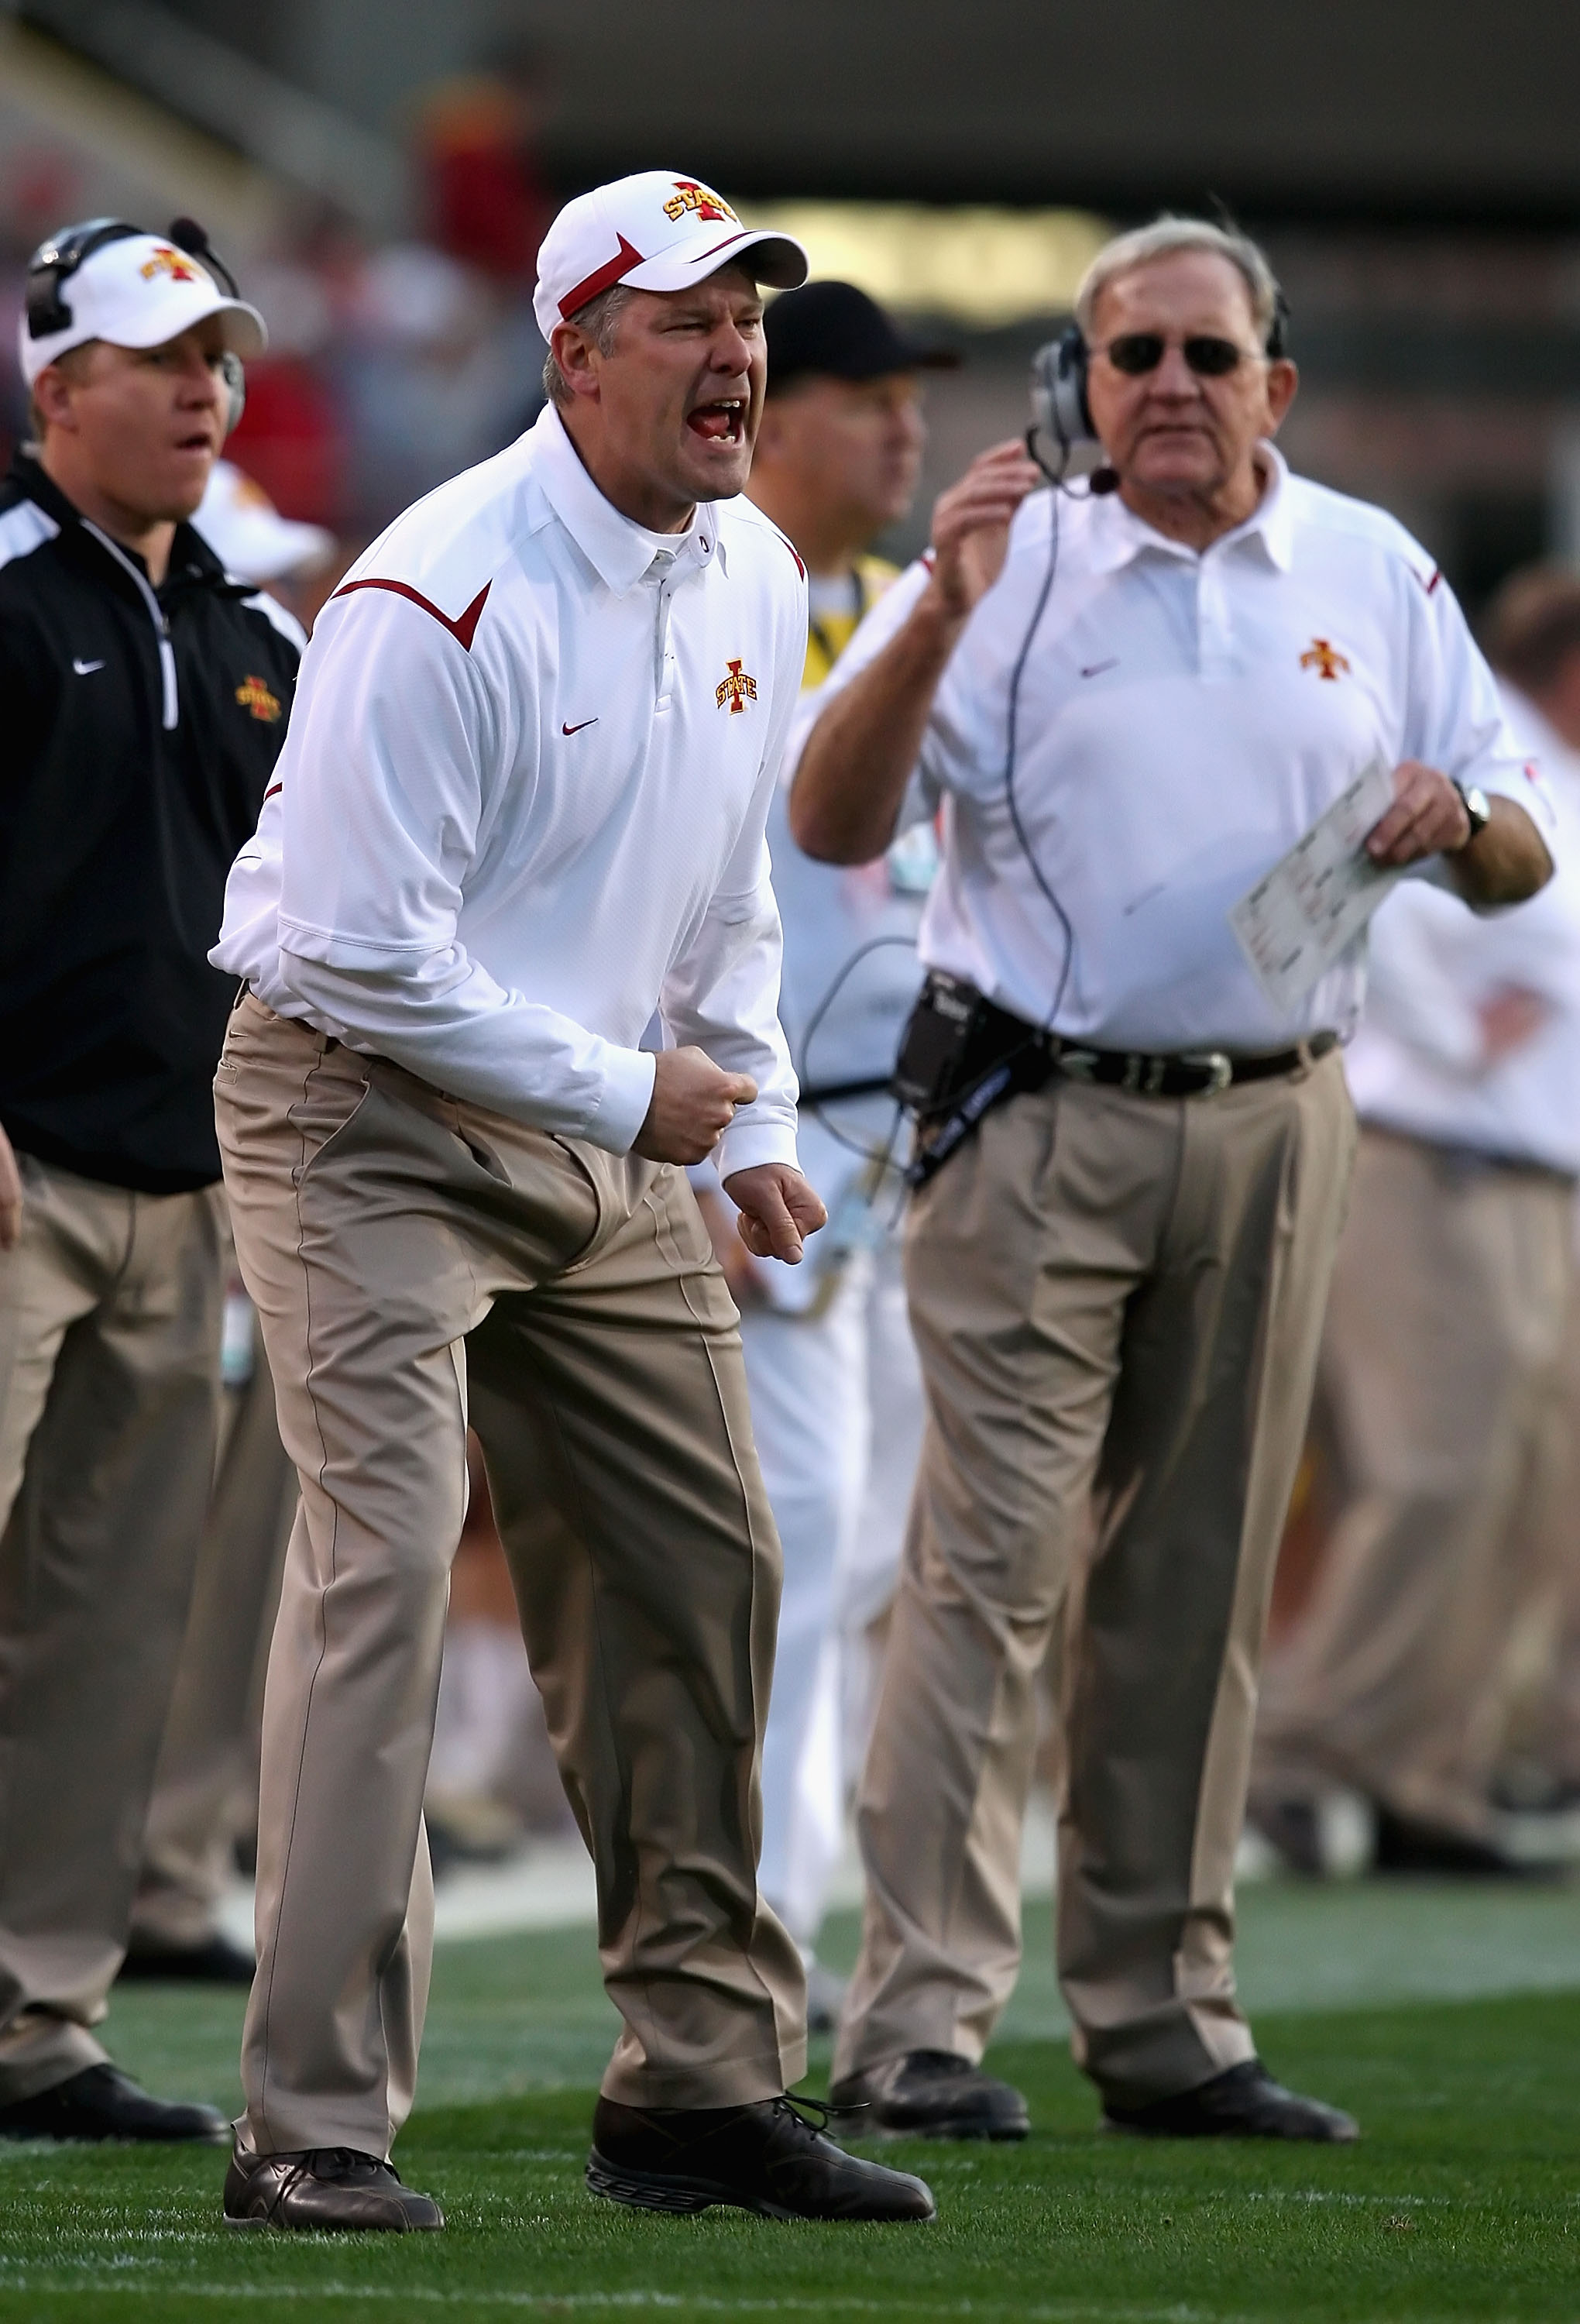 Tempe, AZ - DECEMBER 31:  Head coach Paul Rhoads of the Iowa State Cyclones reacts to a call during the Insight Bowl against the Minnesota Golden Gophers at Arizona Stadium on December 31, 2009 in Tempe, Arizona.  (Photo by Christian Petersen/Getty Images